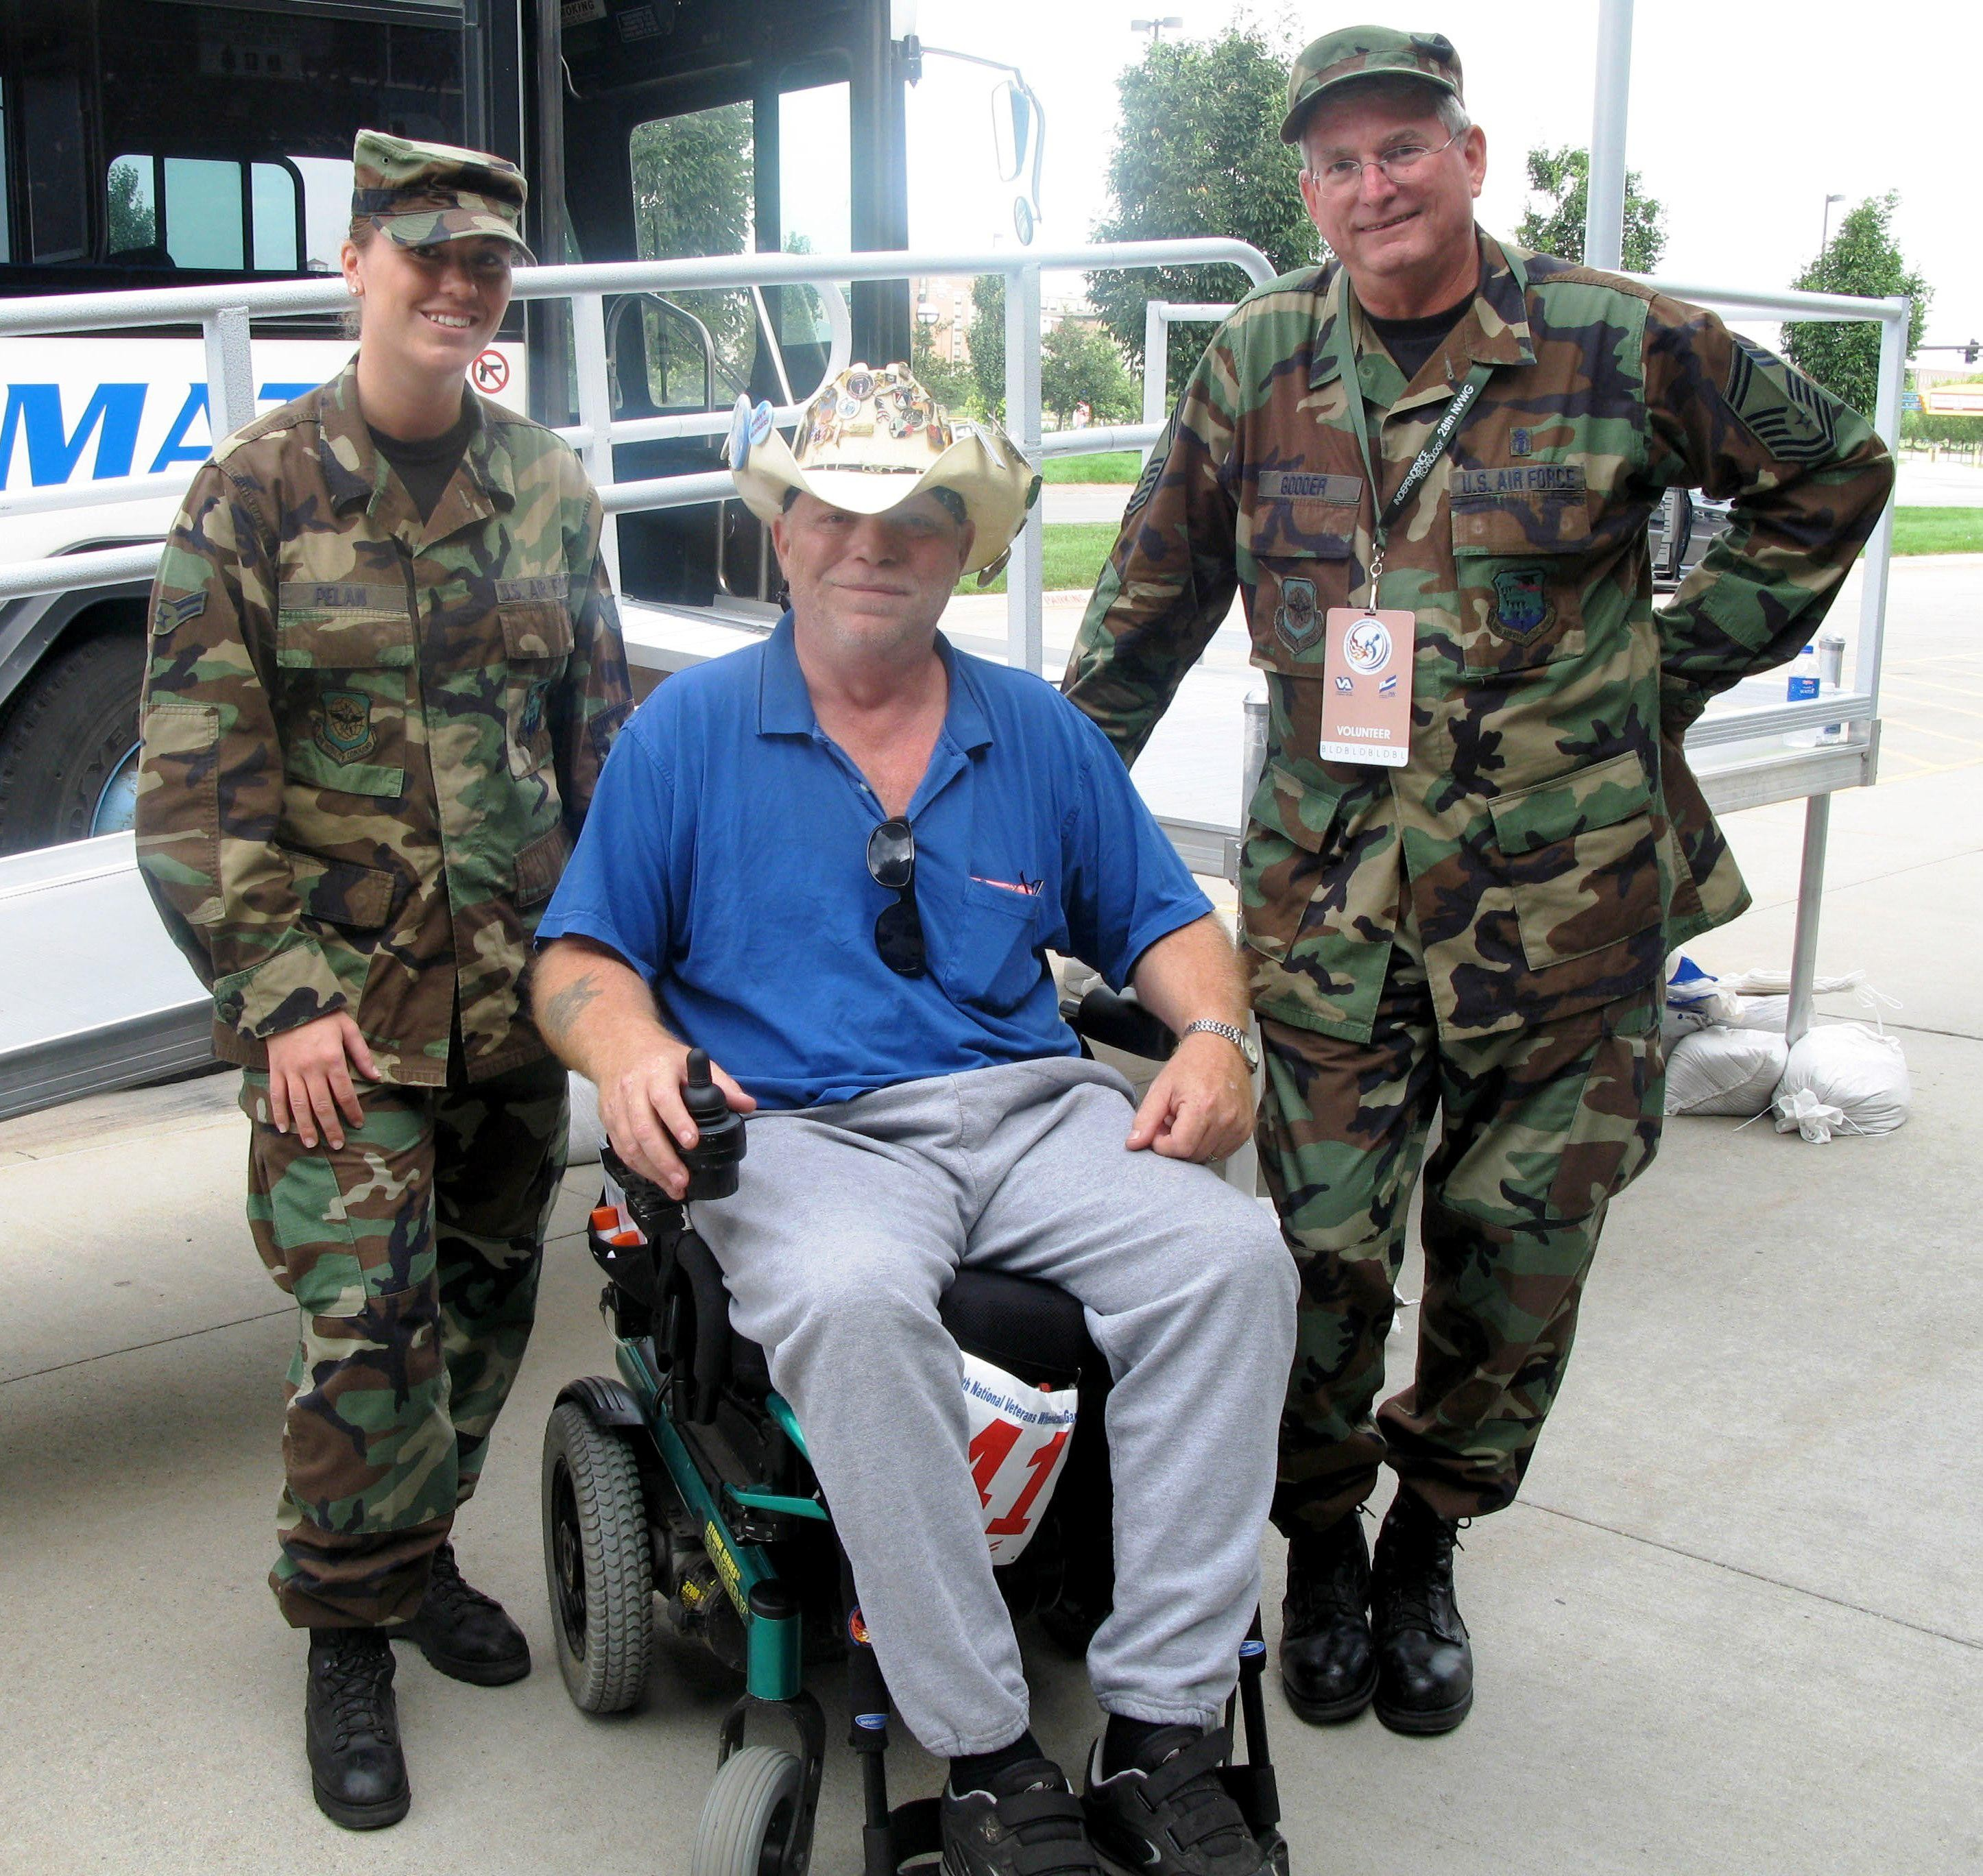 disabled veterans When military personnel transition to civilian employment, america's businesses stand to benefit across all industries, veterans are a ready source of qualified, committed job candidates with transferable skills proven in real world situations.